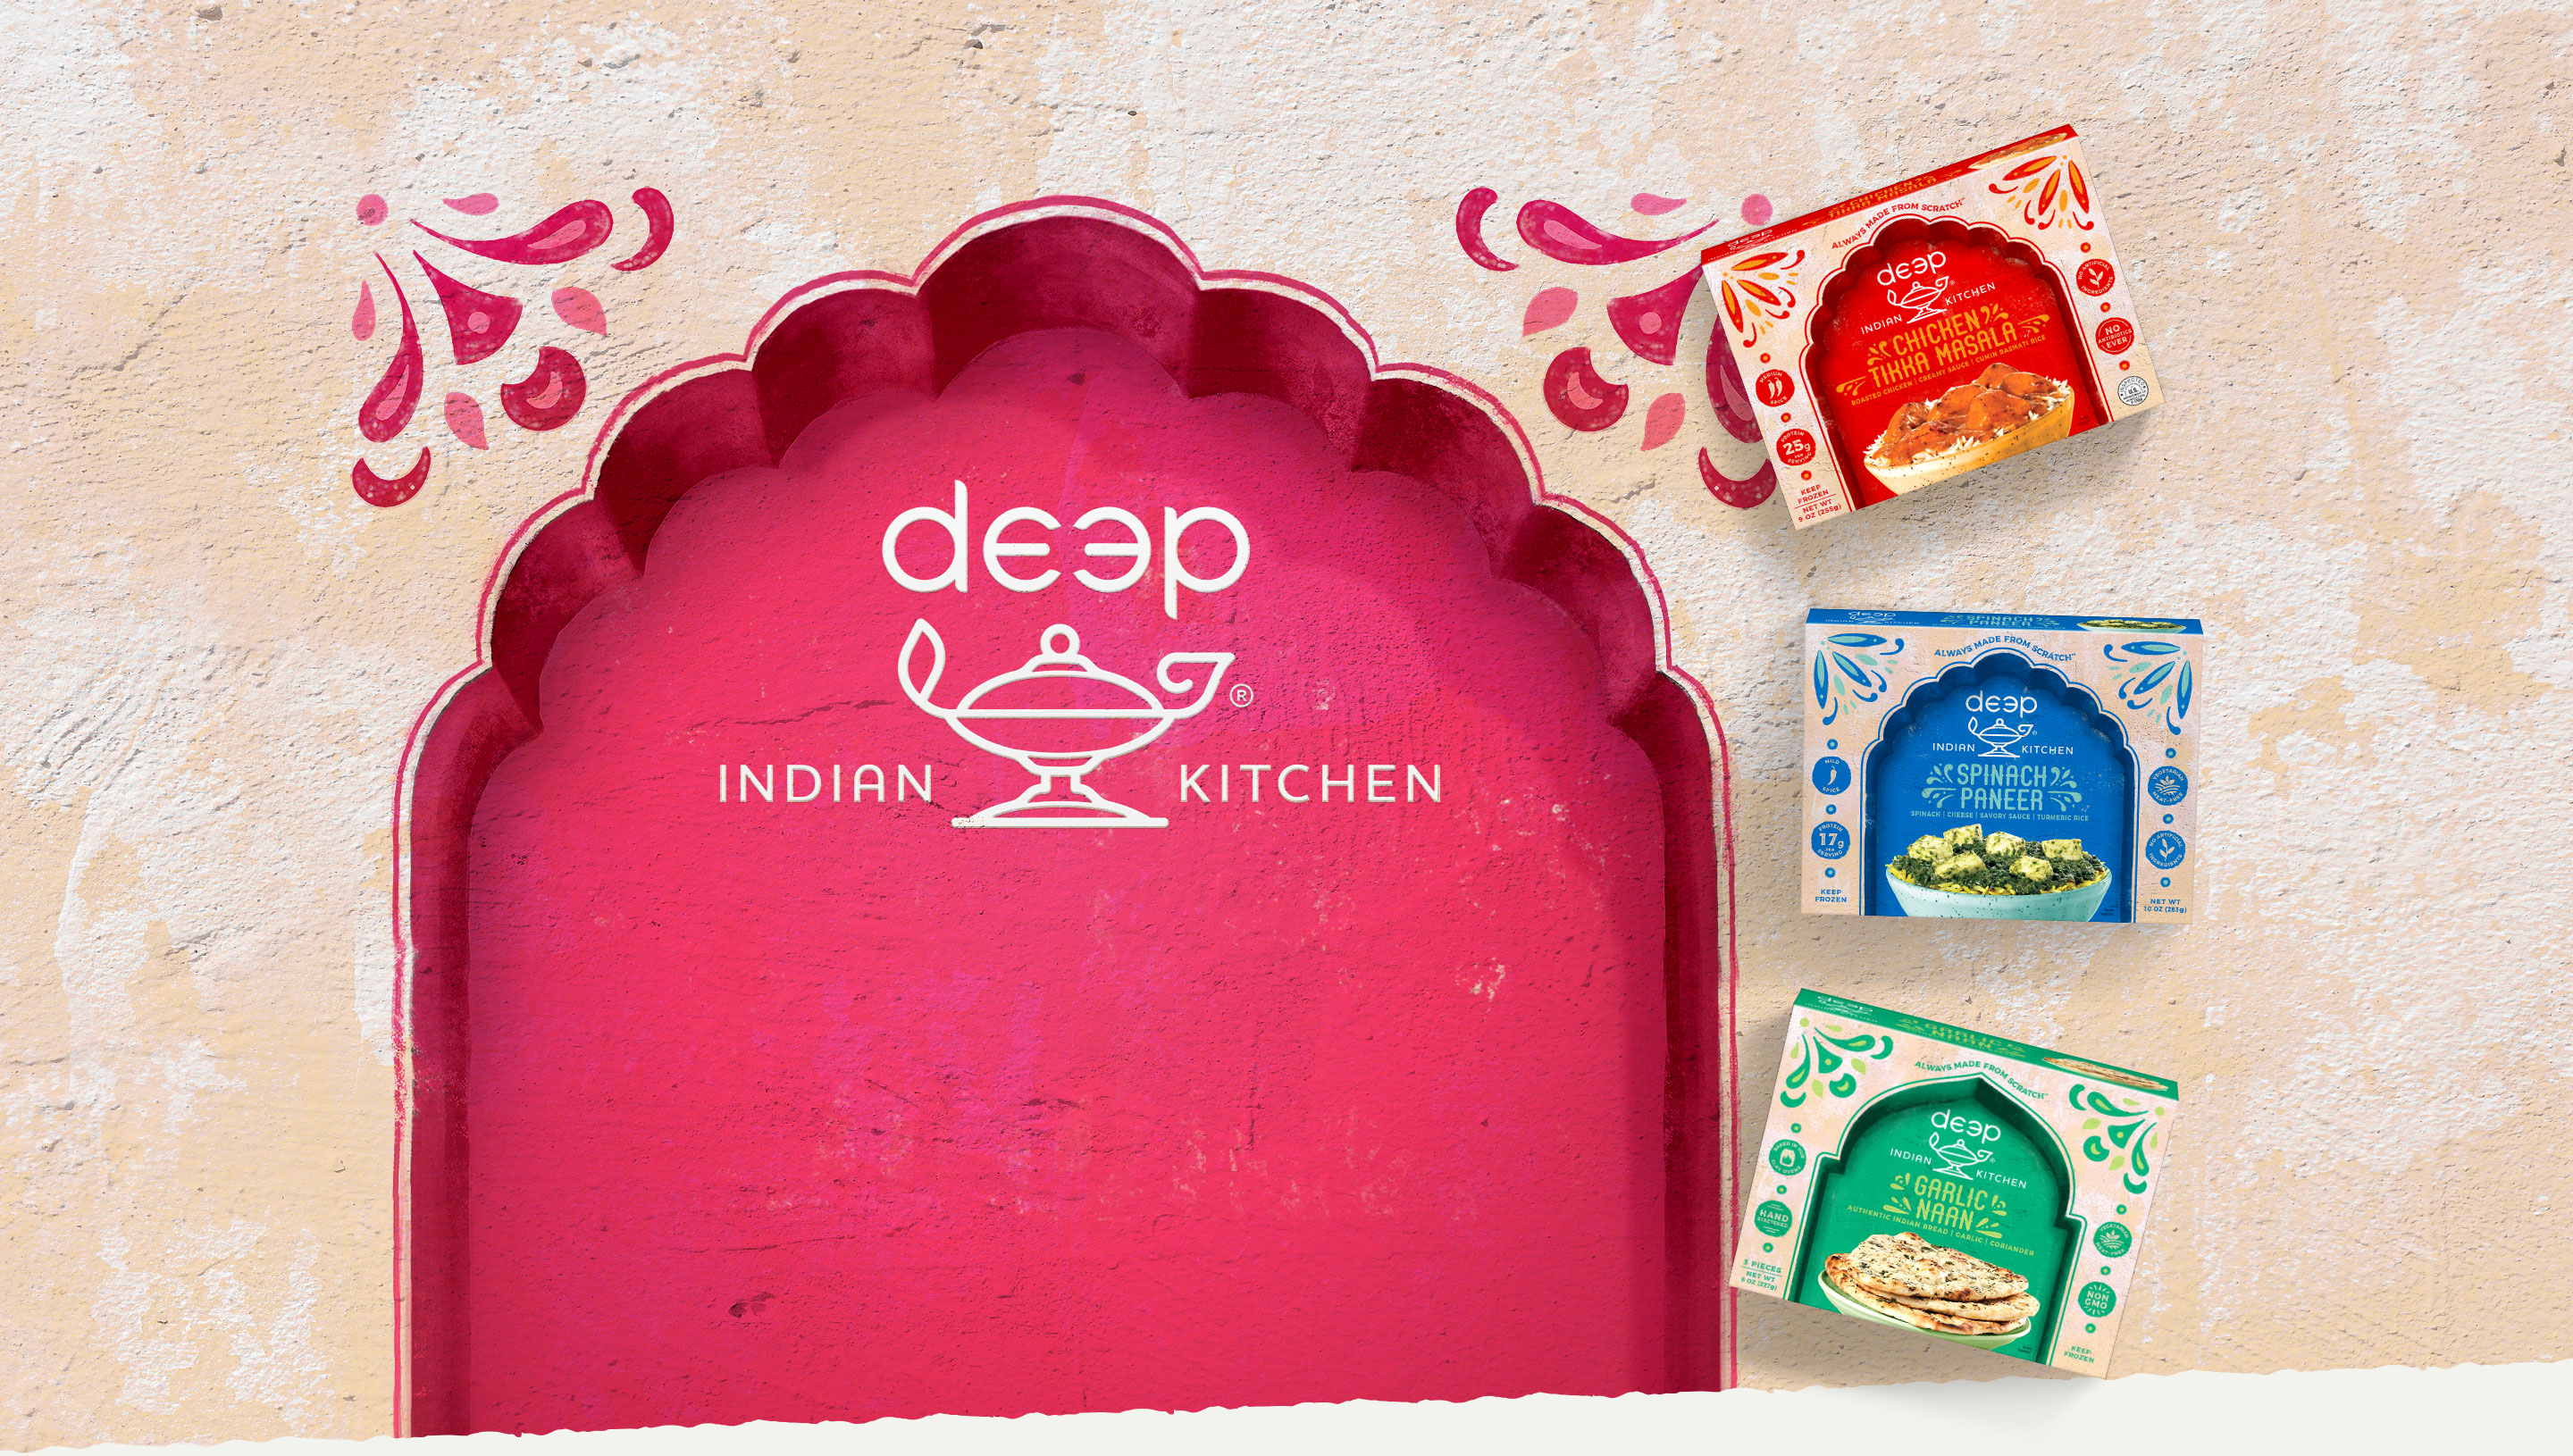 Deep Indian Kitchen